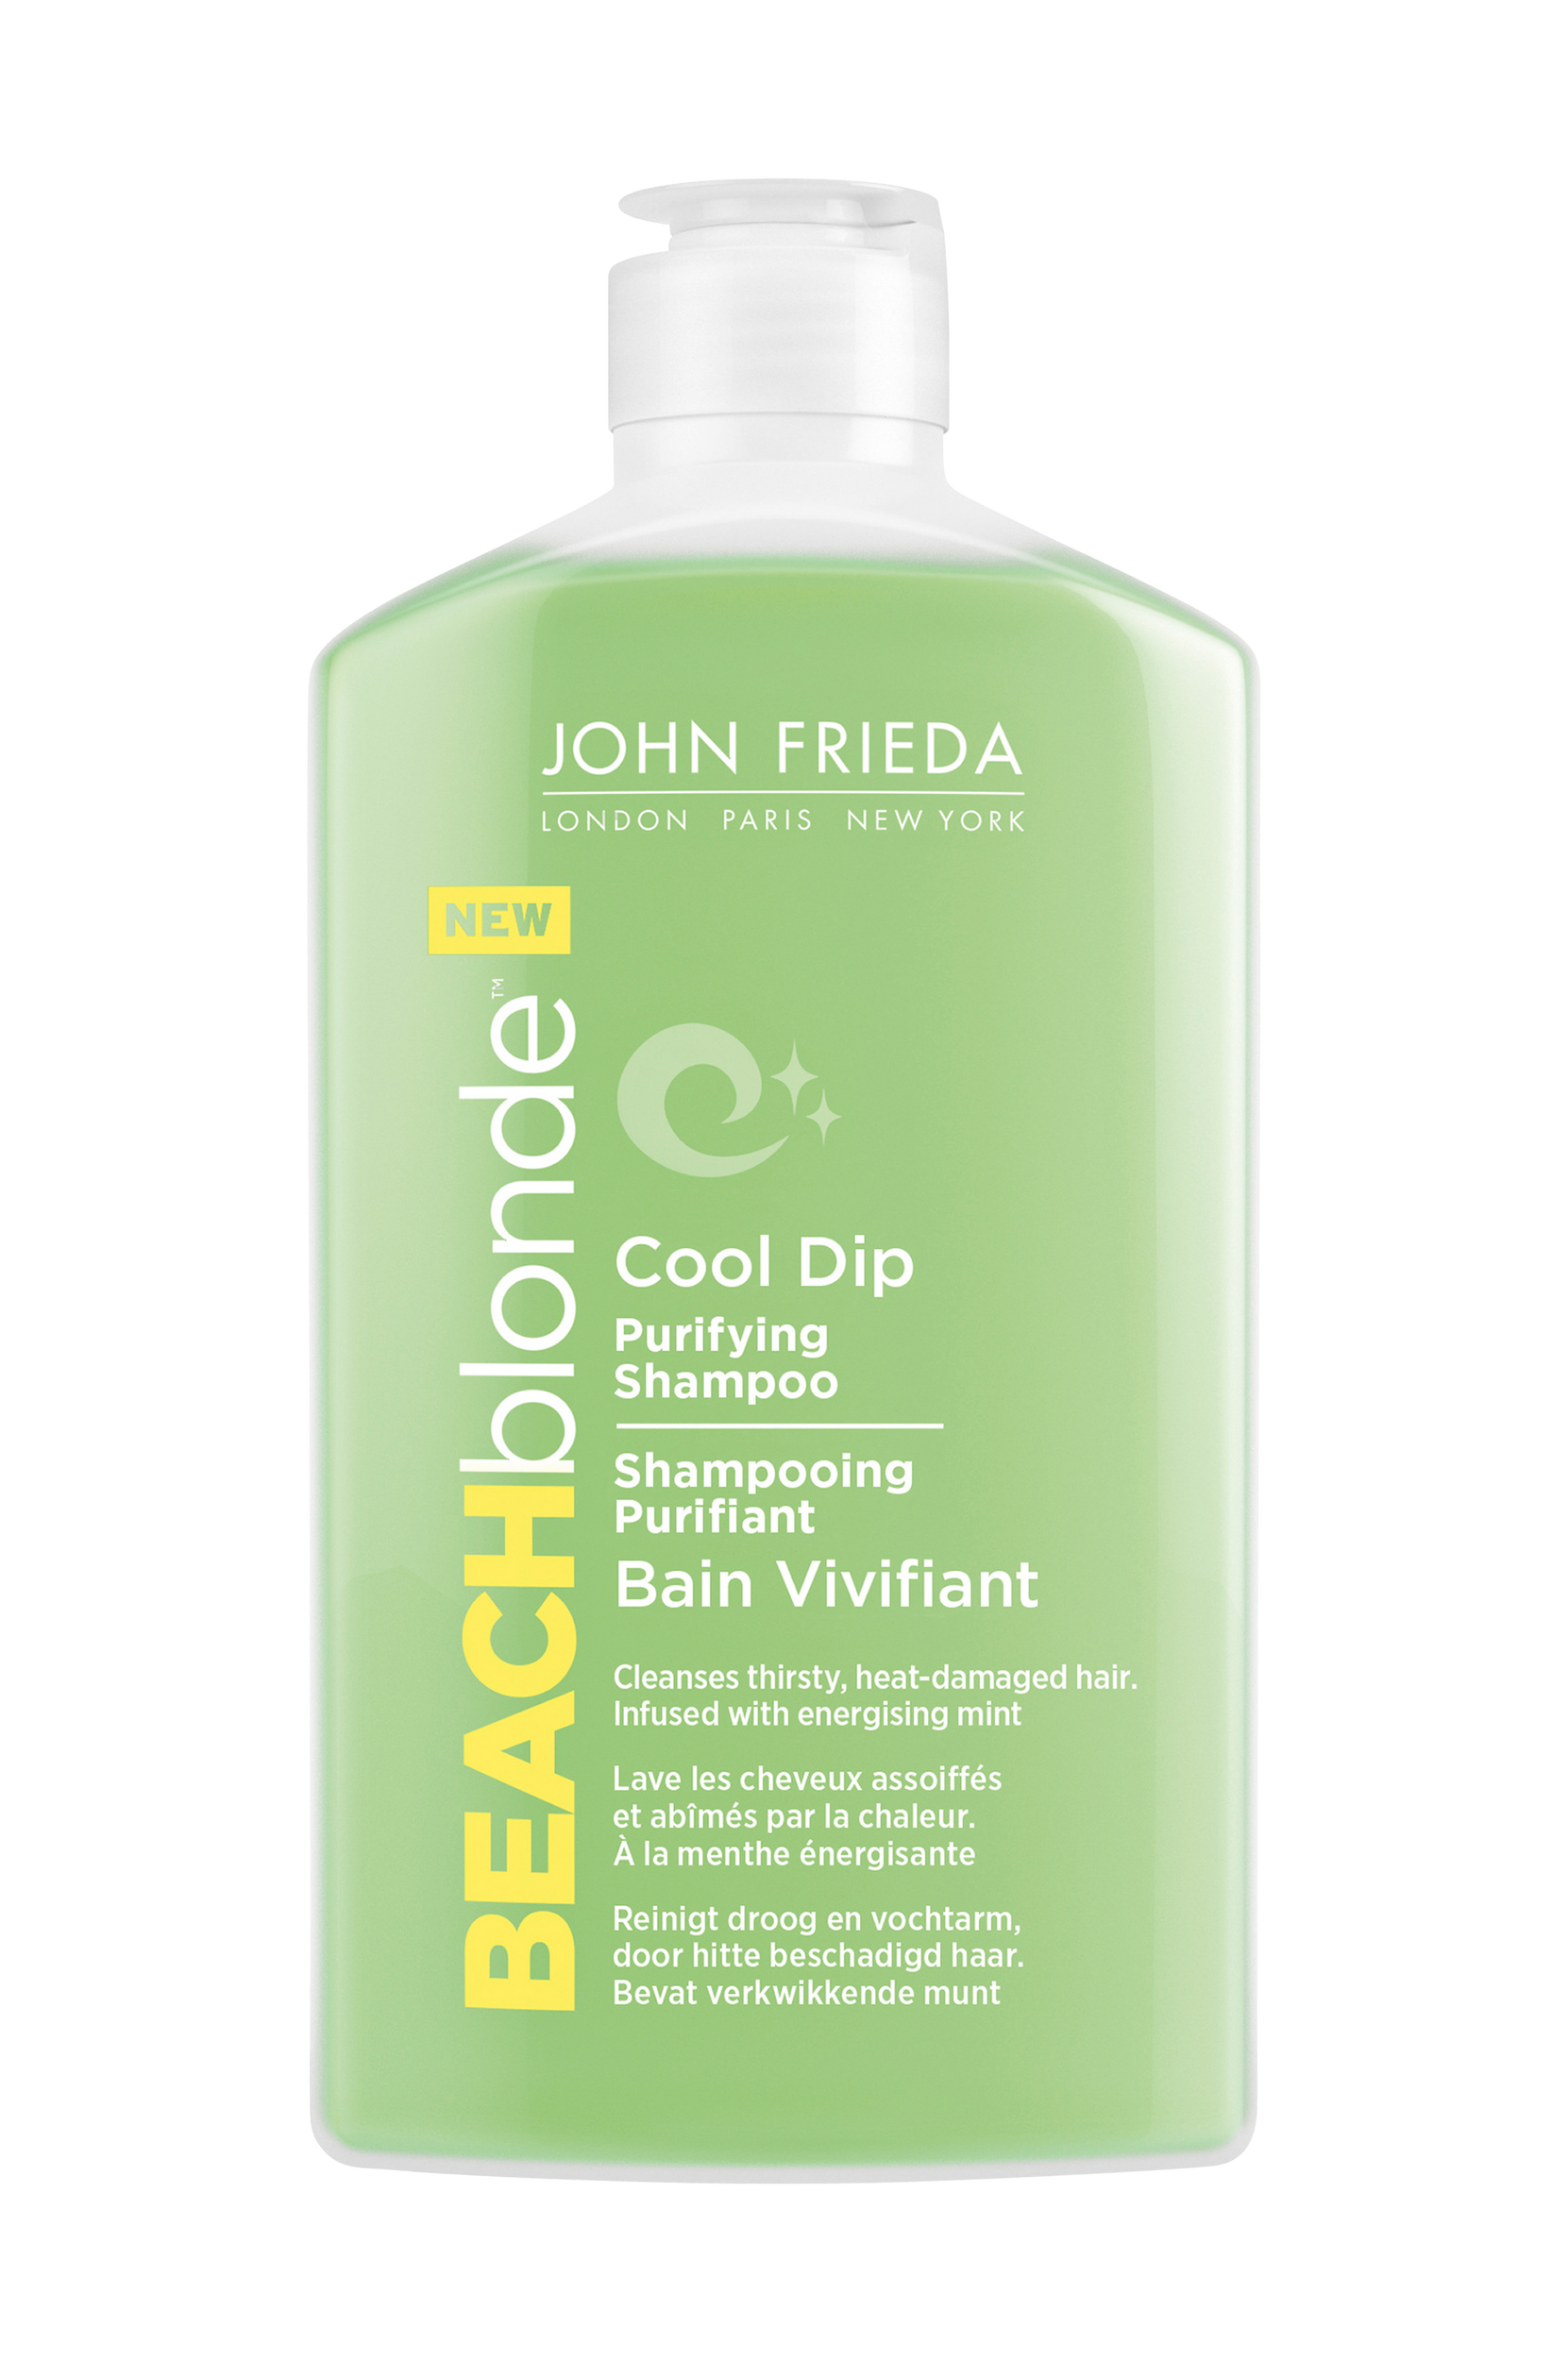 Jf Masterbrand Beach Blonde Cool Dip Purifying Shampoo 250ml